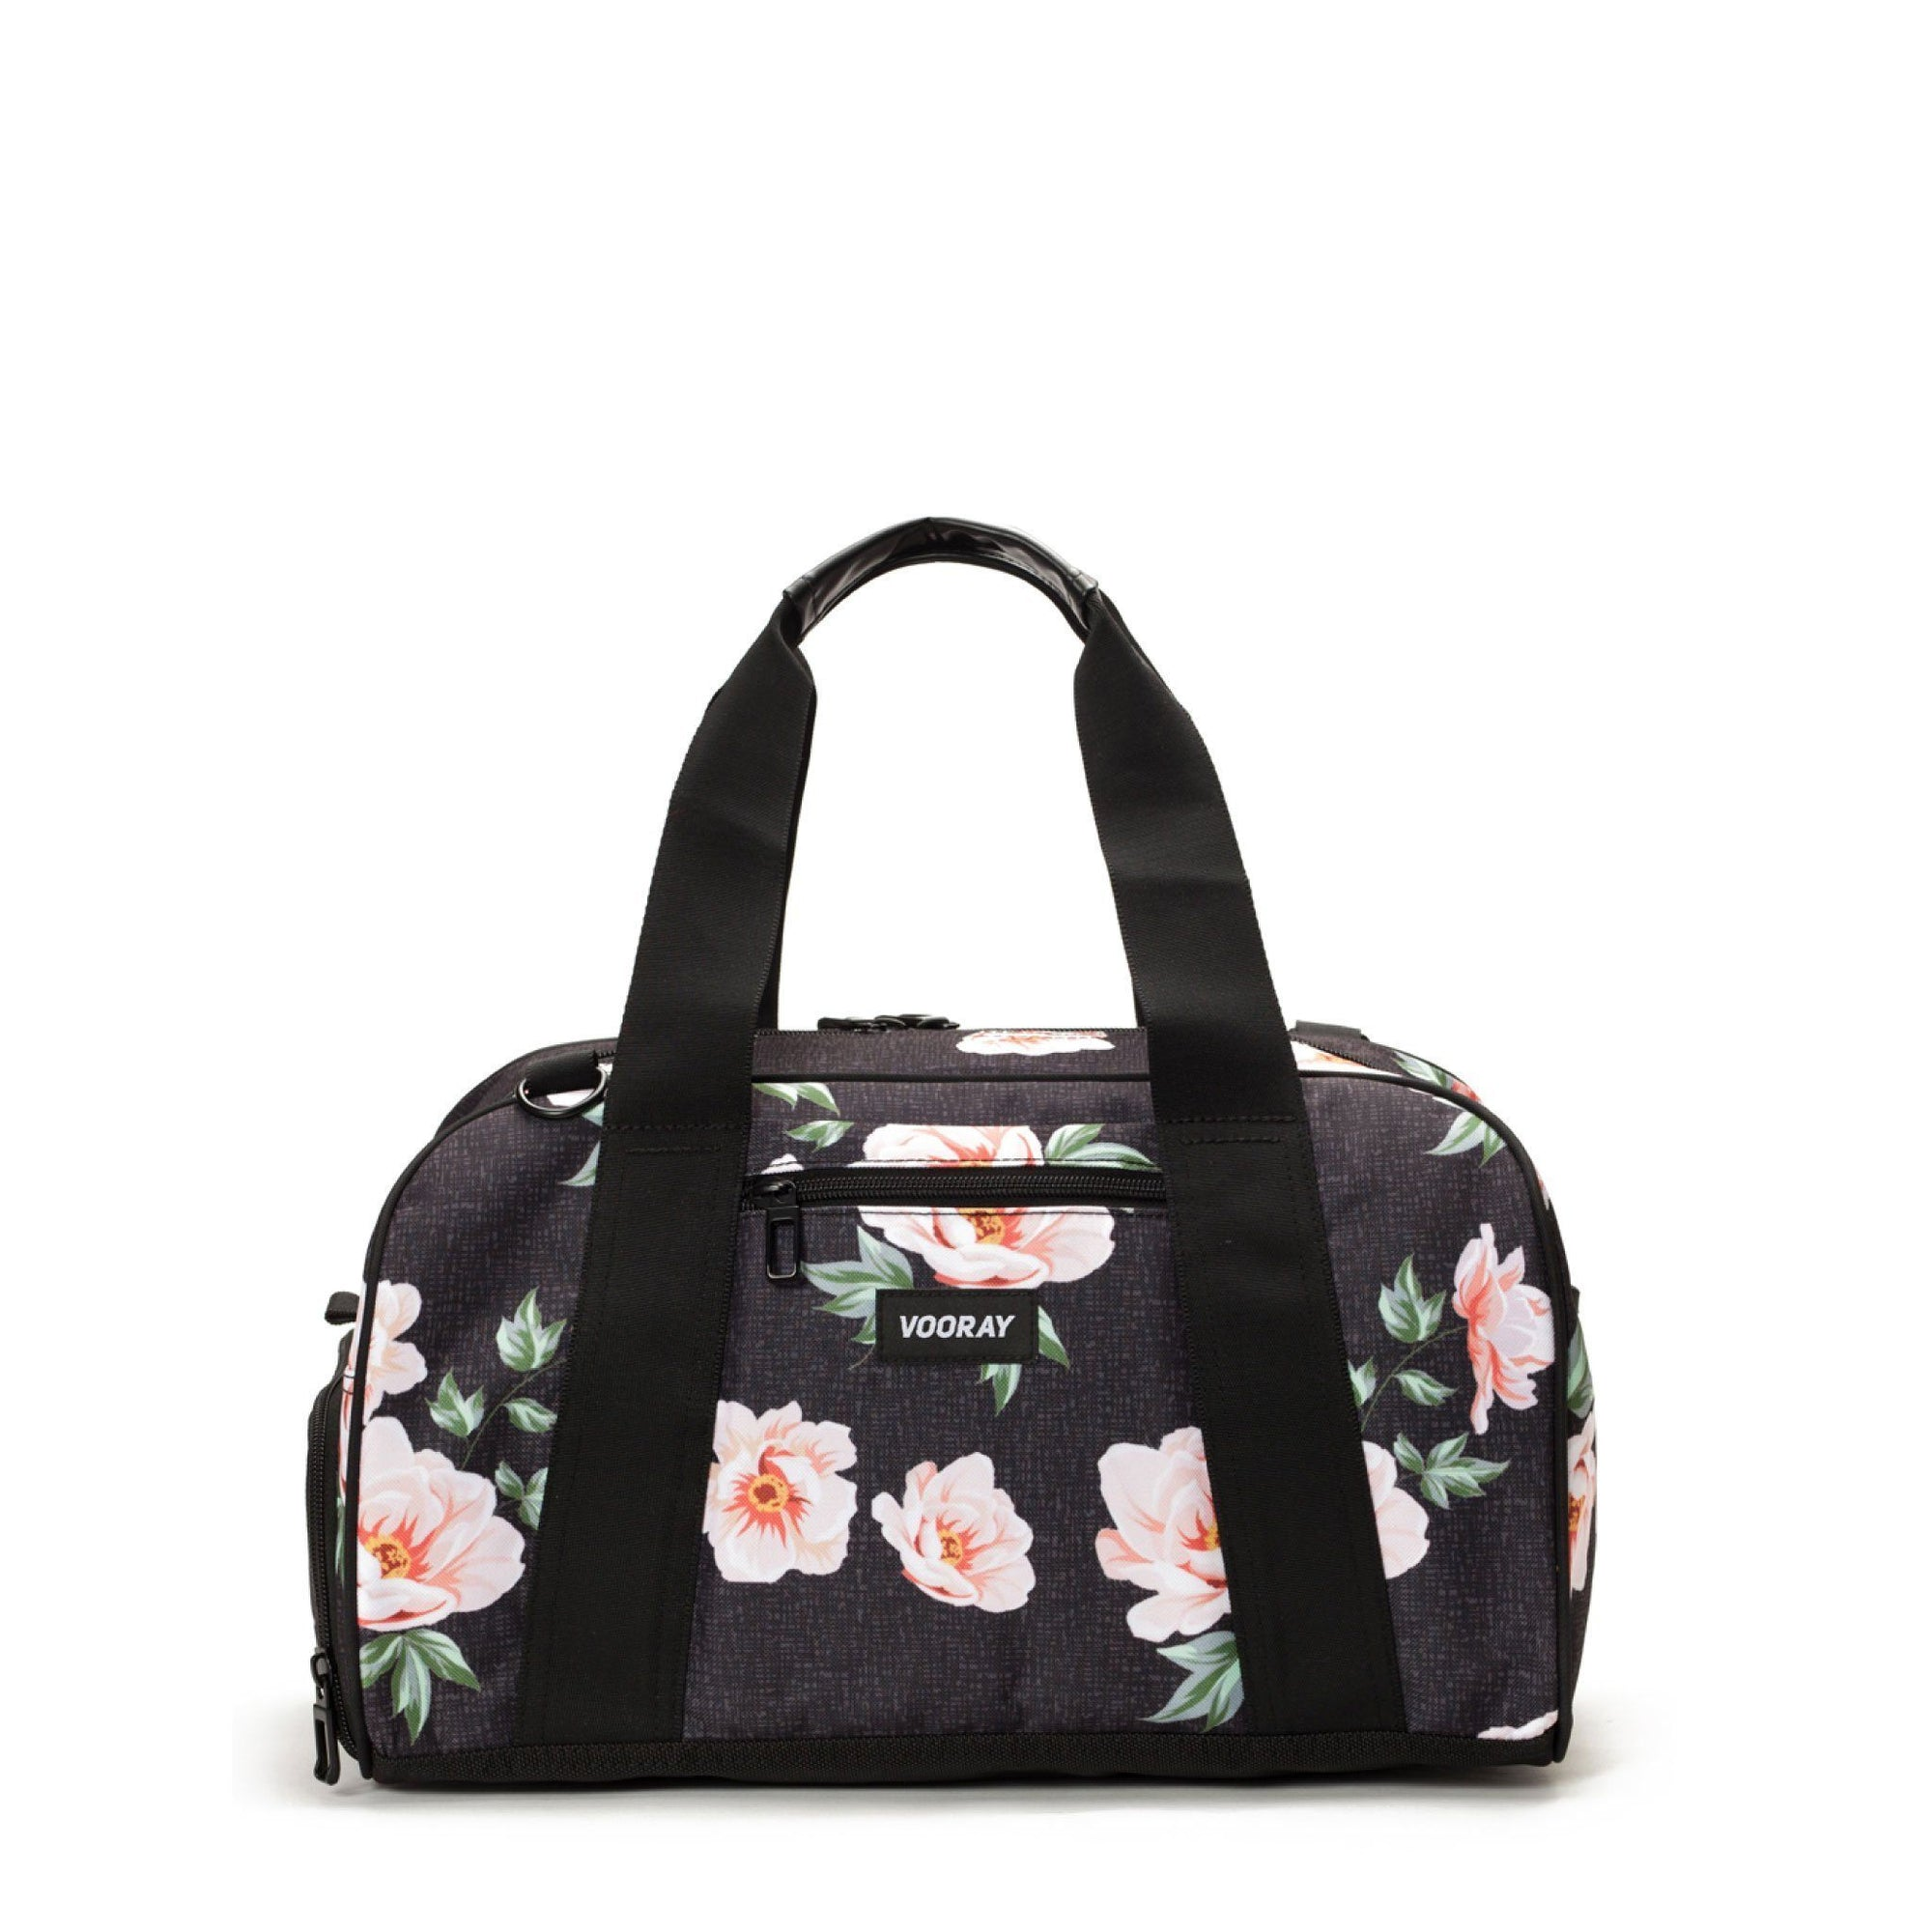 Vooray Burner Gym Duffel-Rose Black